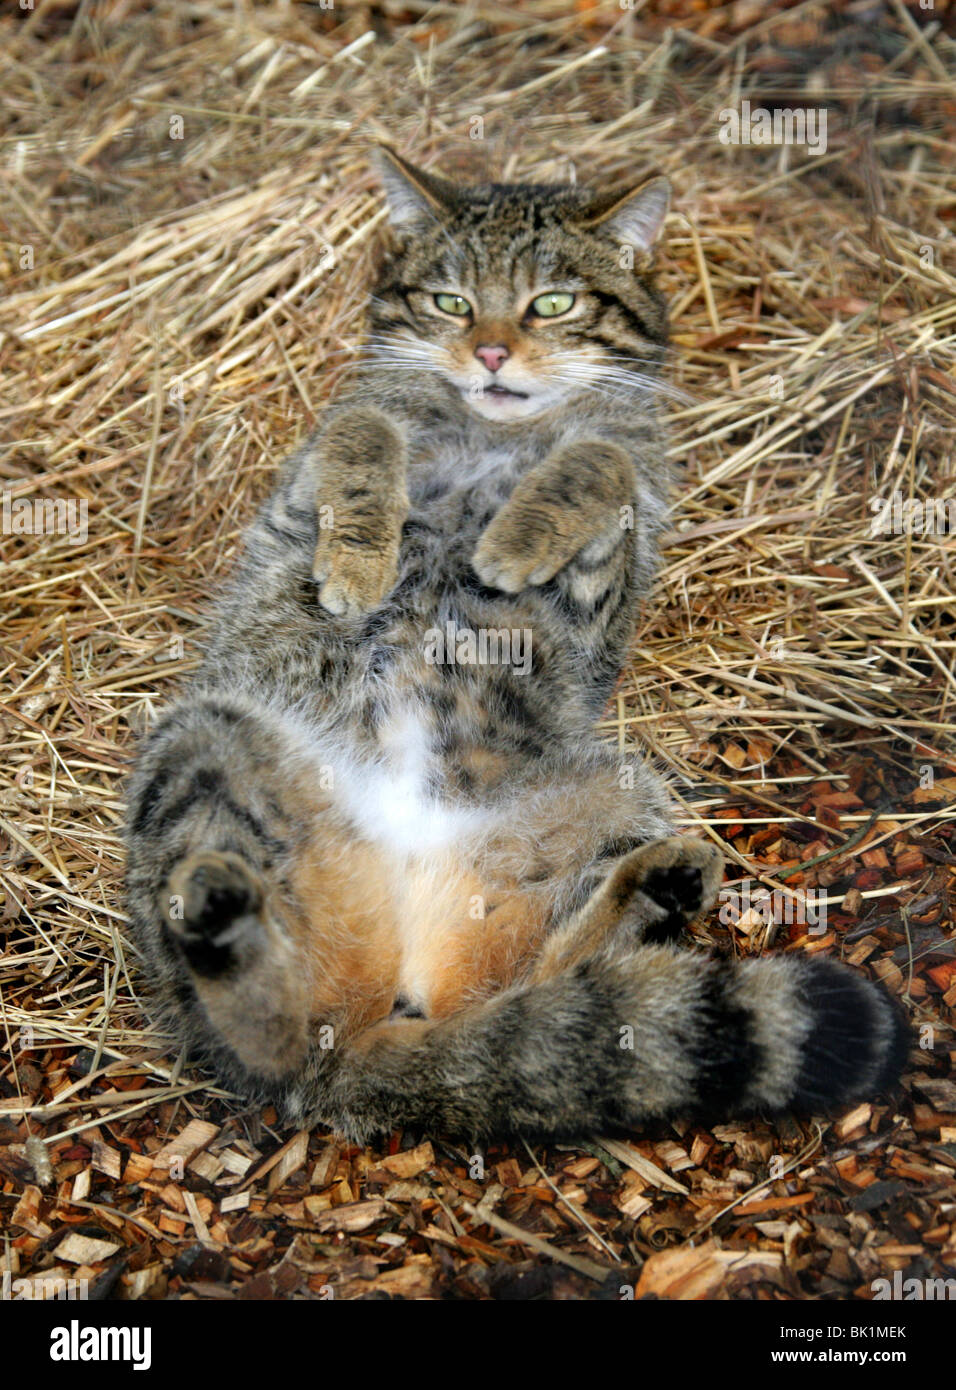 Scottish Wild Cat, Felis silvestris grampia, Felidae, Northern and Western Scotland. In Untypical Playful Mood. - Stock Image